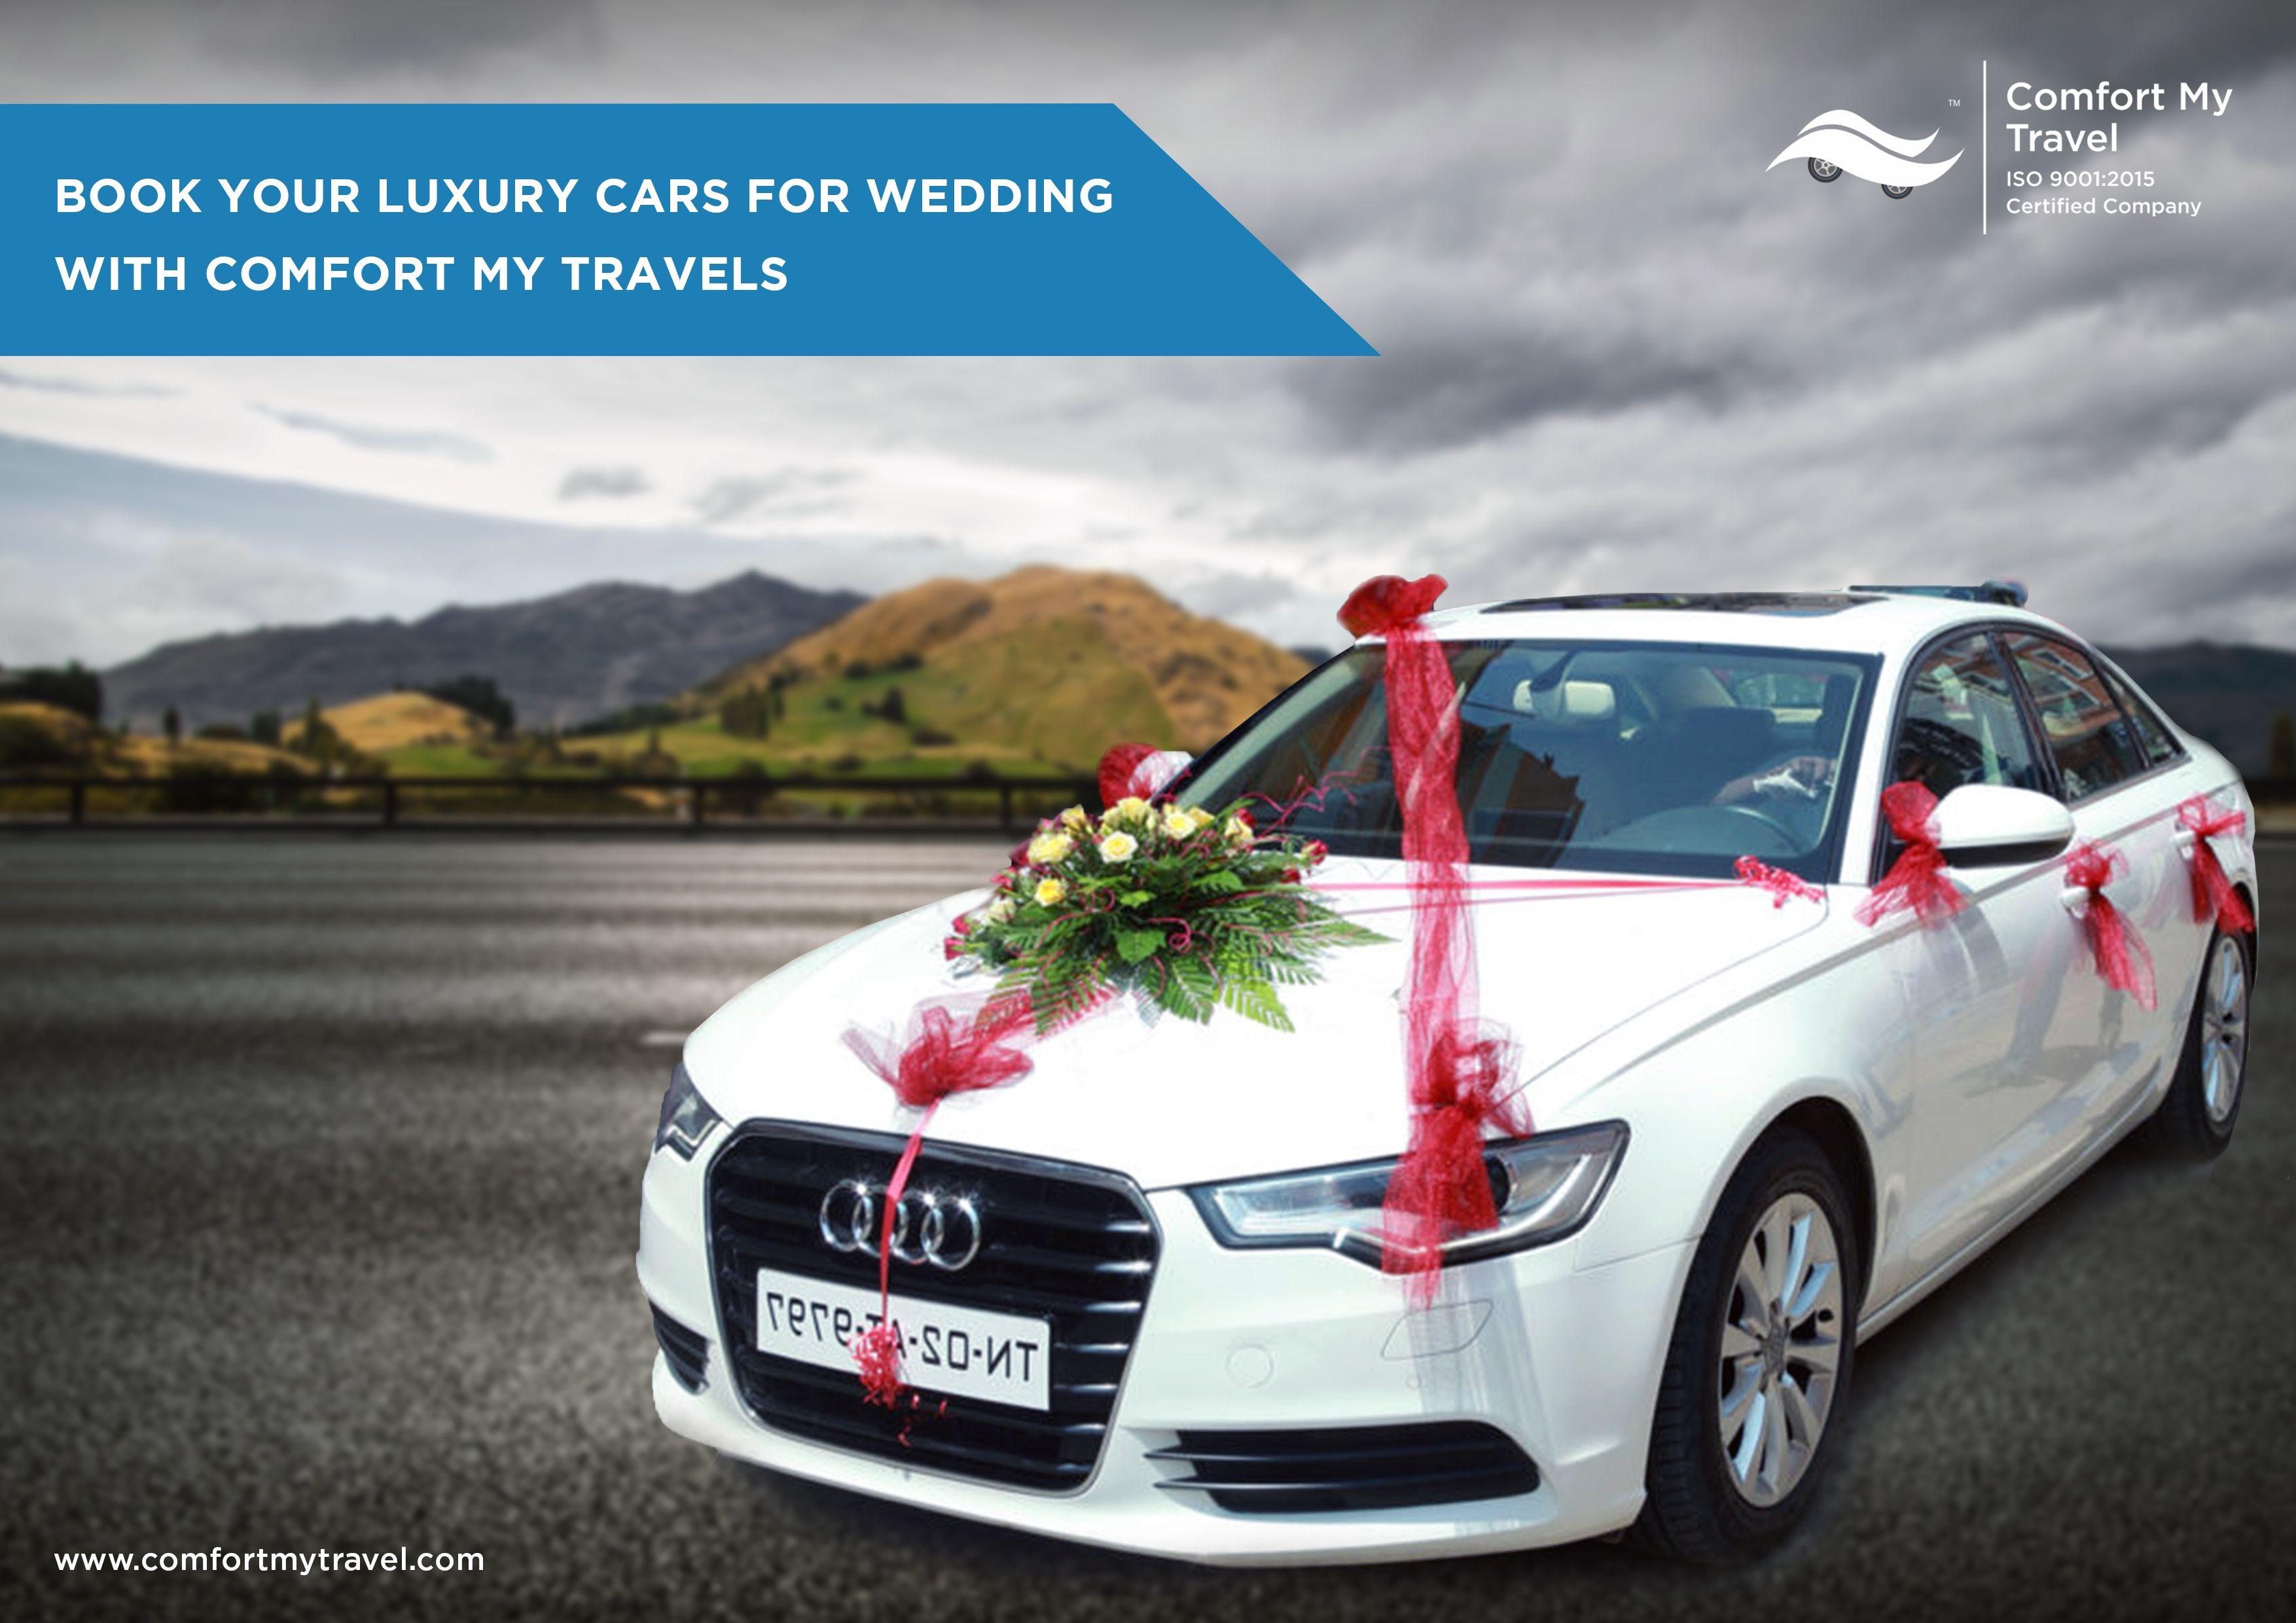 Hire Luxury Wedding Cars Rental Lucknow Wedding Car Car Rental Luxury Car Rental